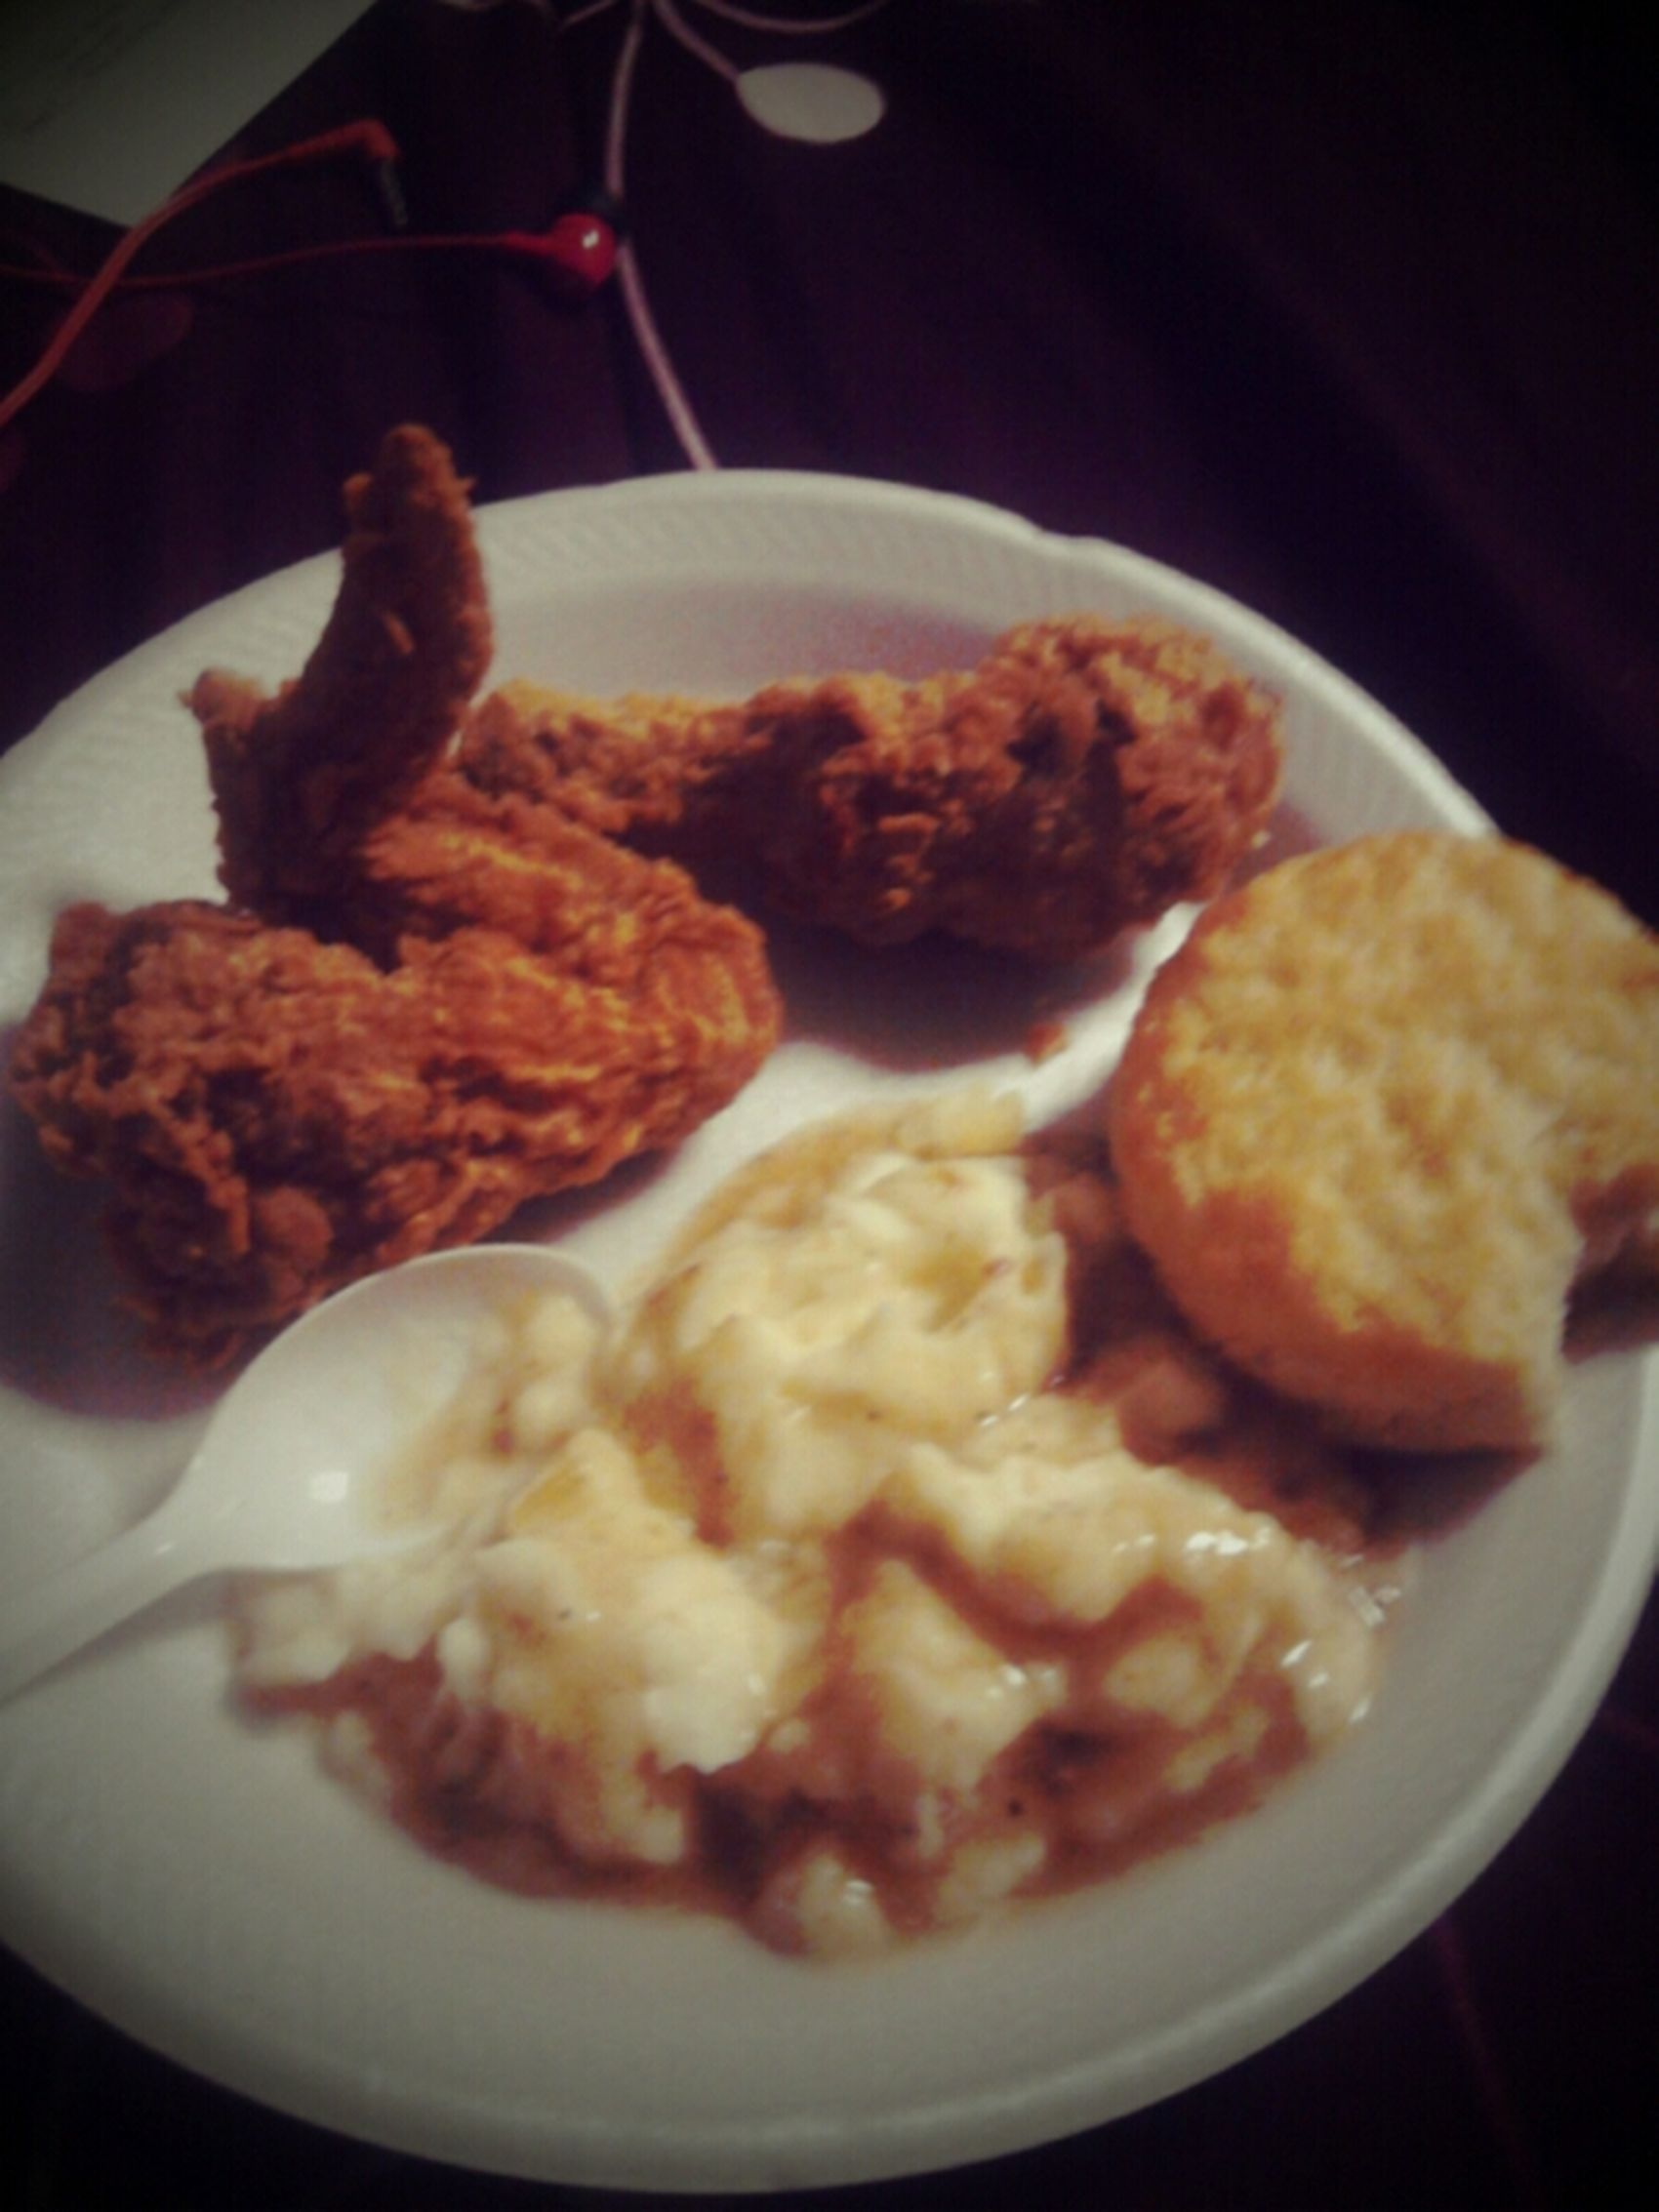 S/o to Steve for the Popeye's!